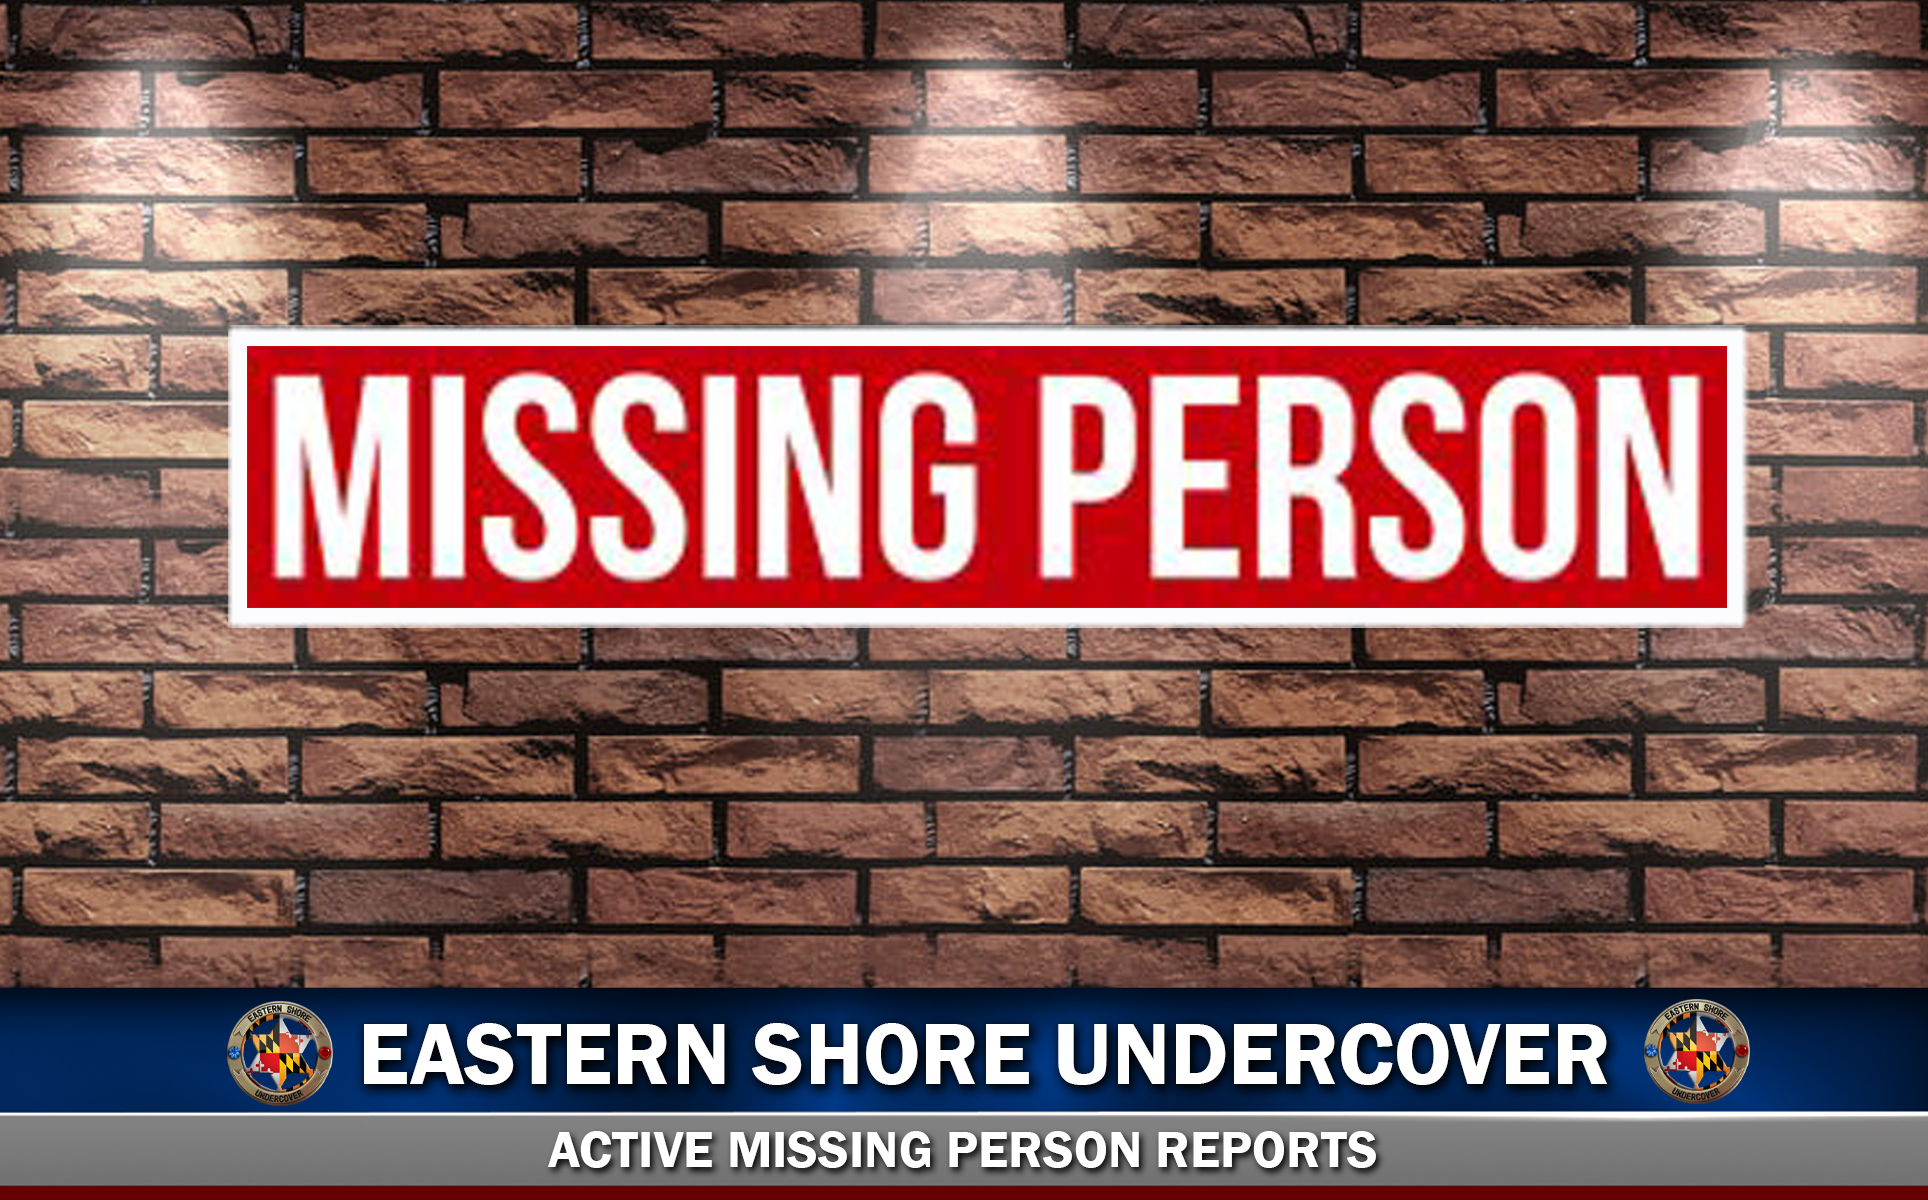 Missing Person Reports